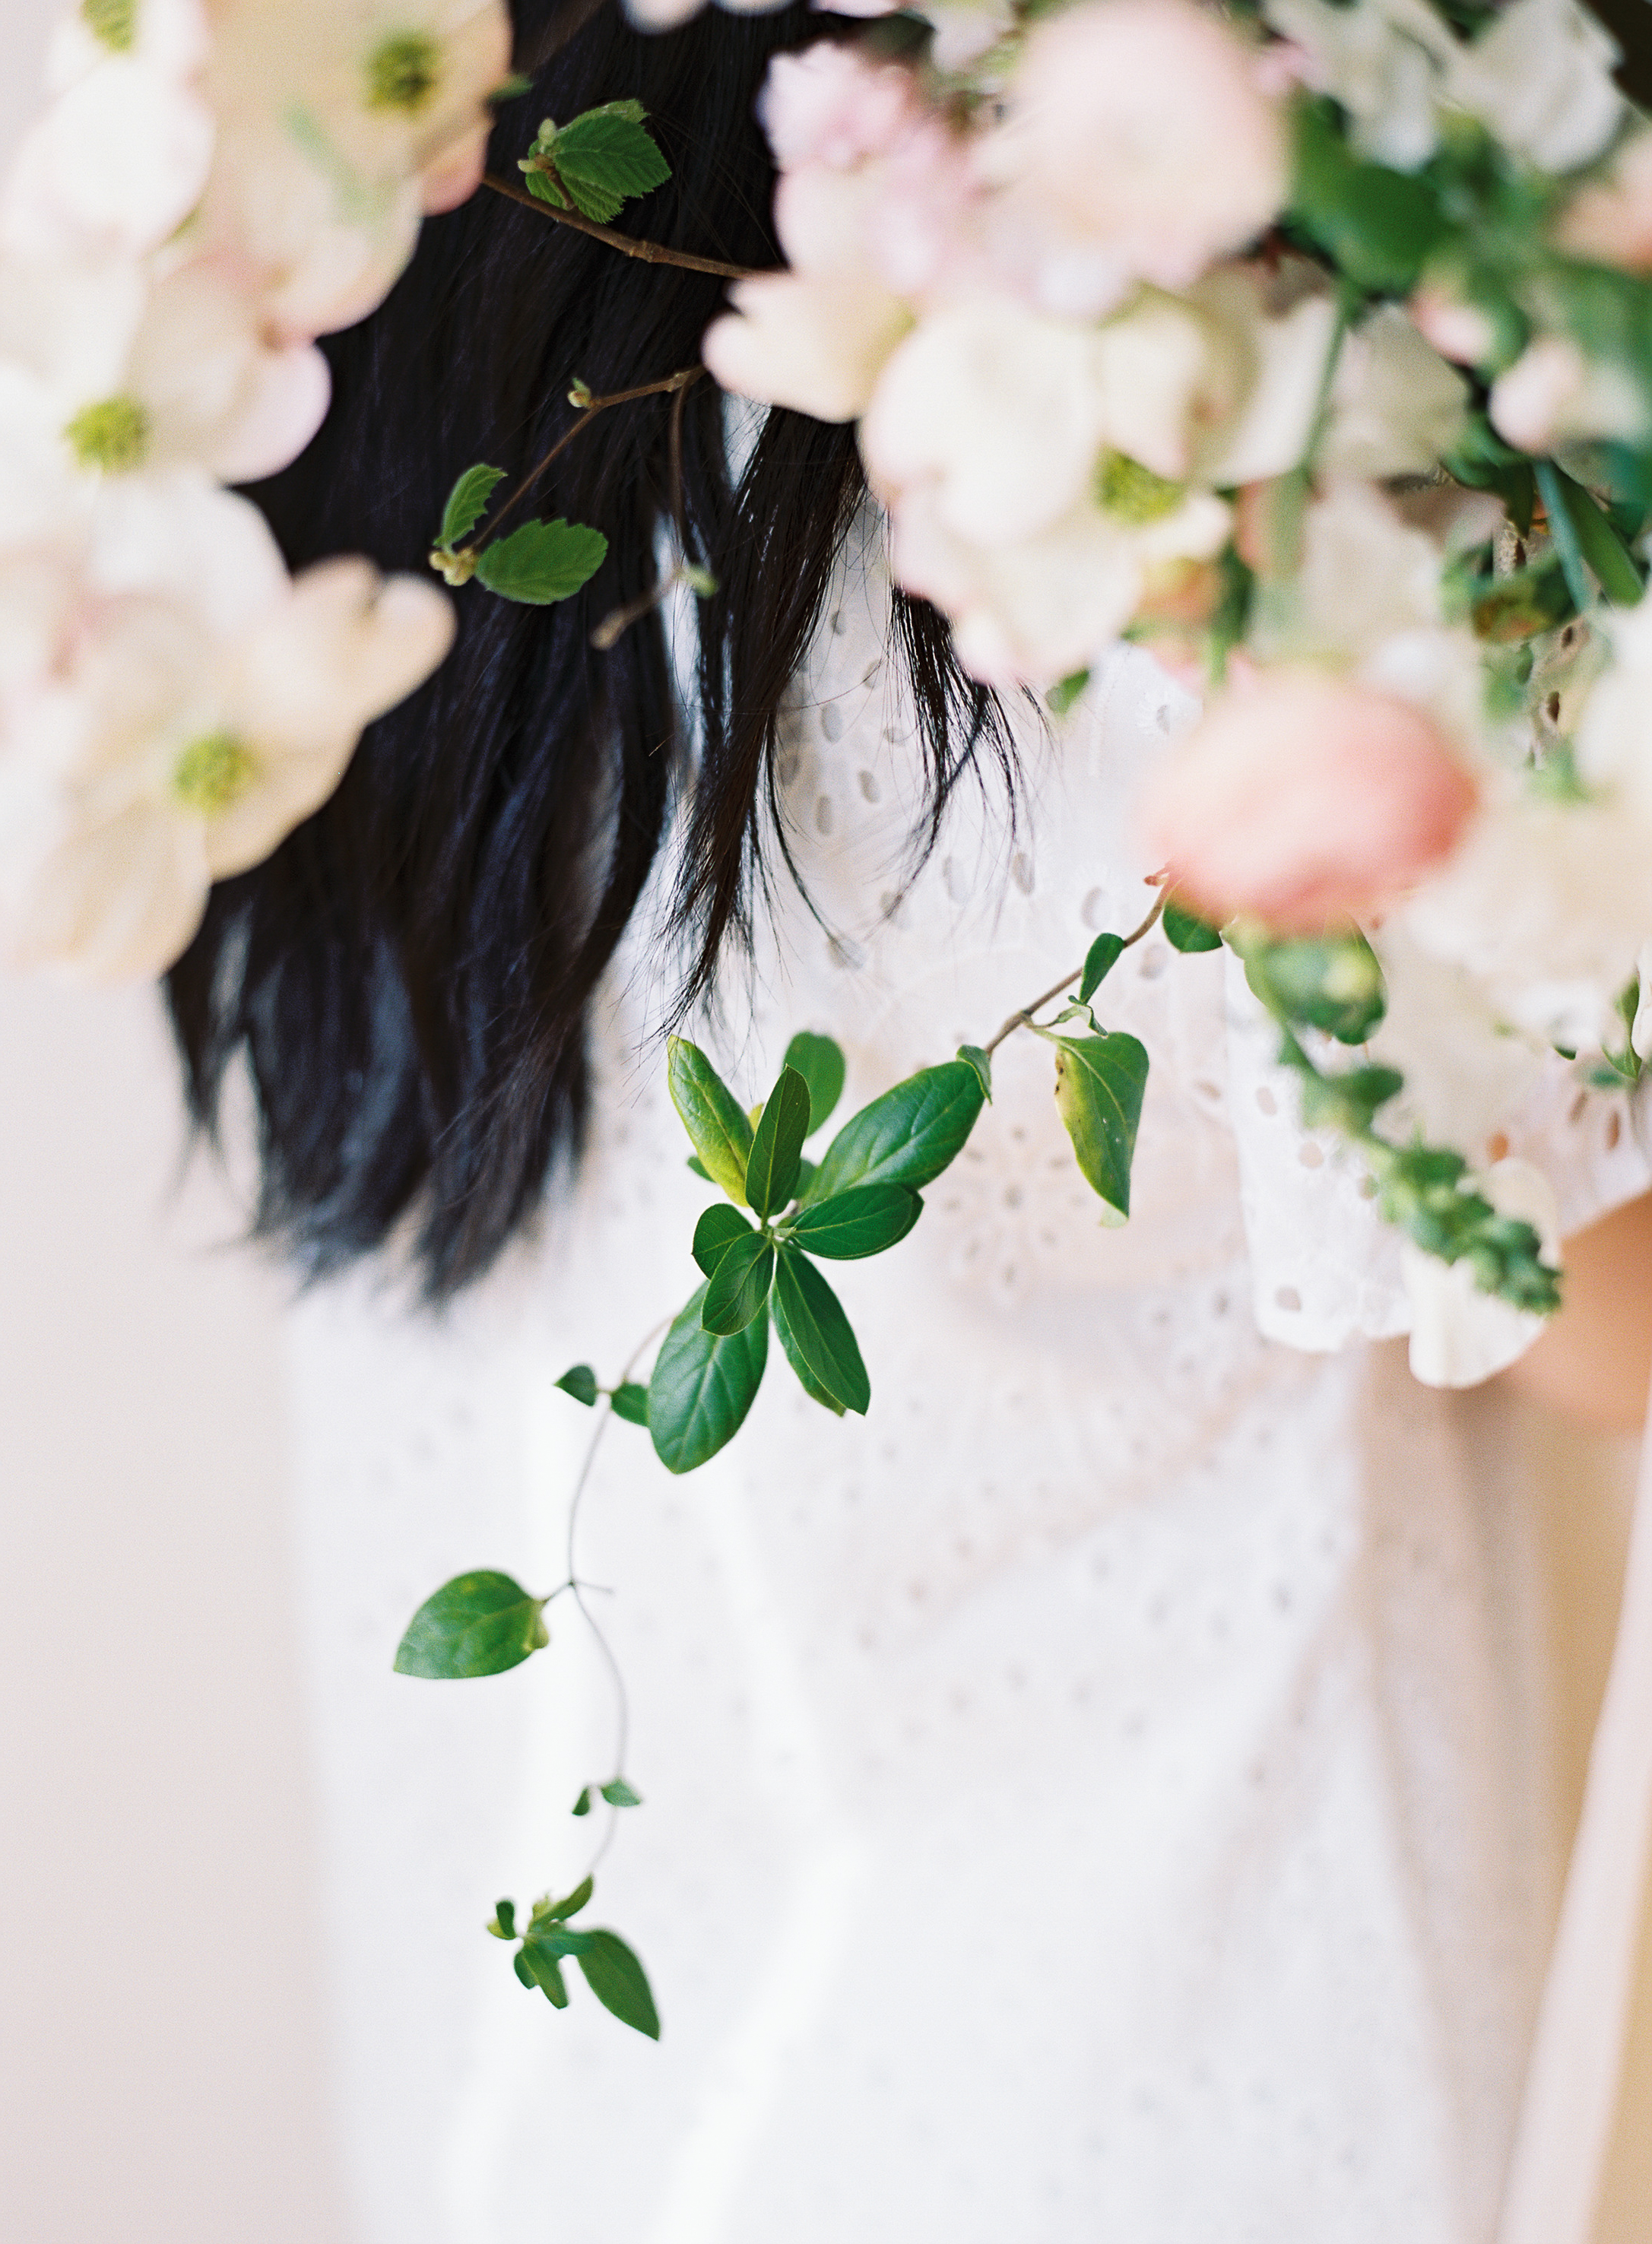 Meghan Mehan Photography | Fine Art Film Wedding Photographer | California | San Francisco | Napa | Sonoma | Santa Barbara | Big Sur | Los Angeles | Destination Wedding Photographer 025.jpg